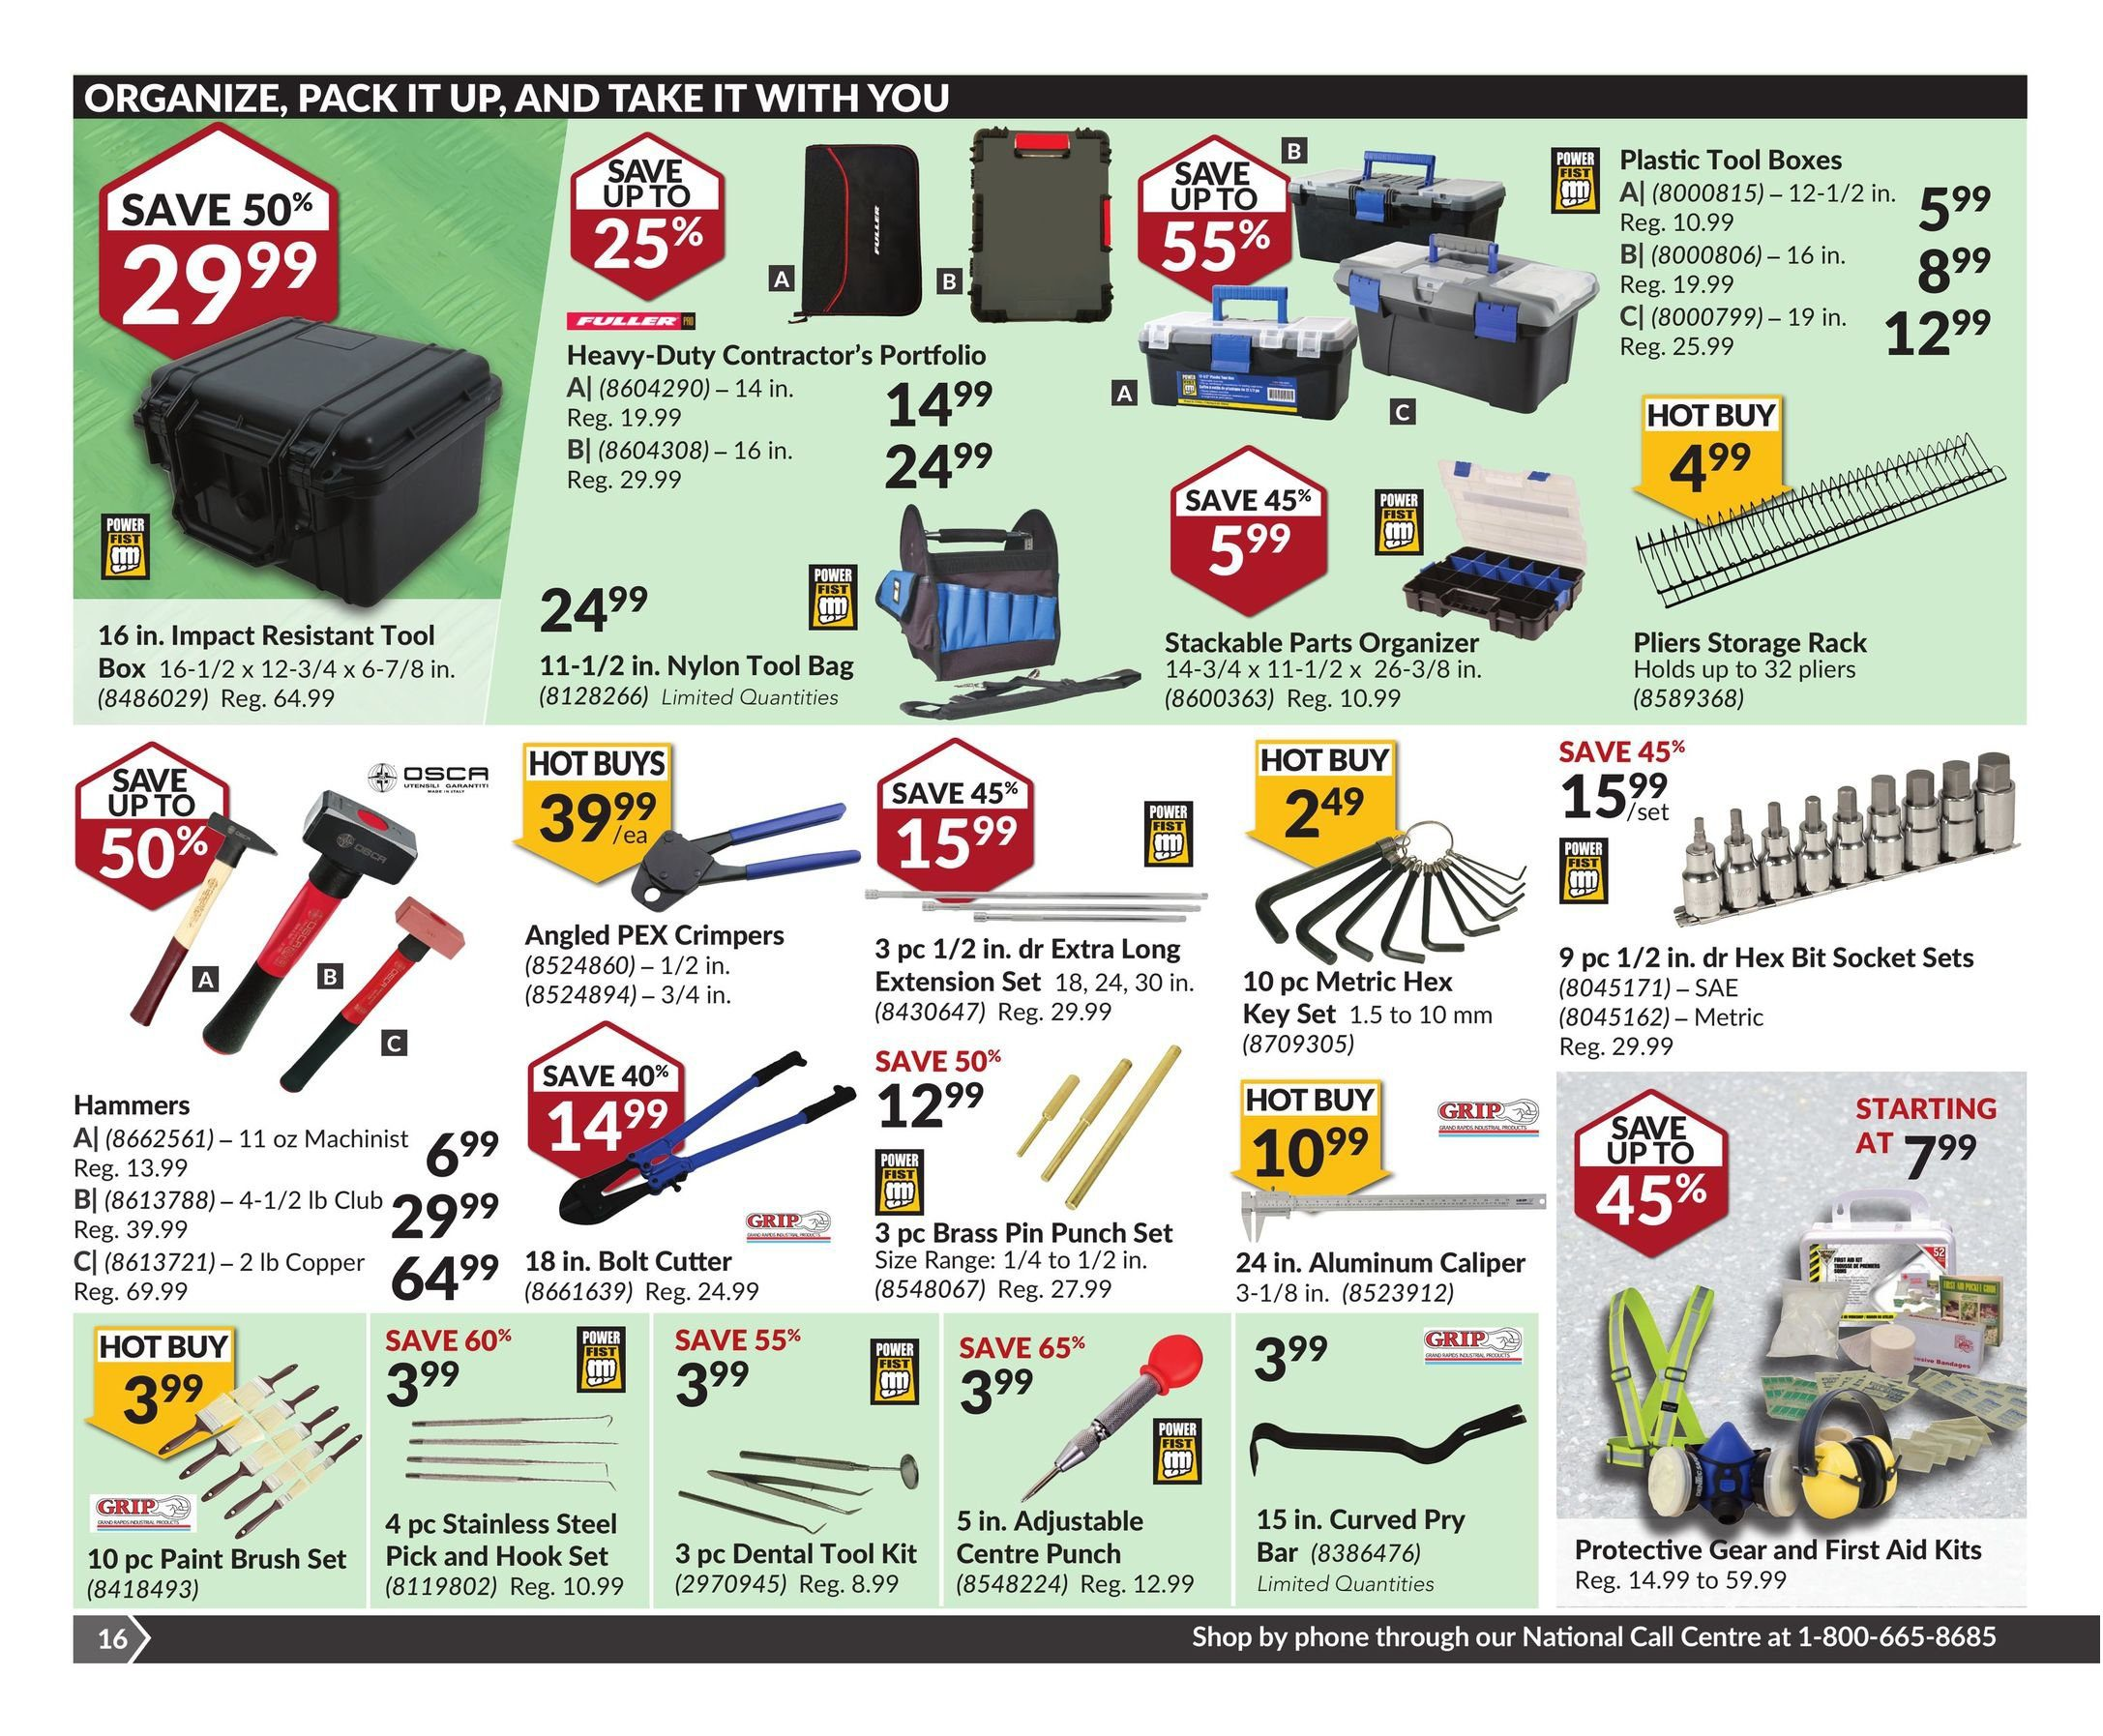 Princess Auto Weekly Flyer Your Christmas Wish List Dec 13 – 25